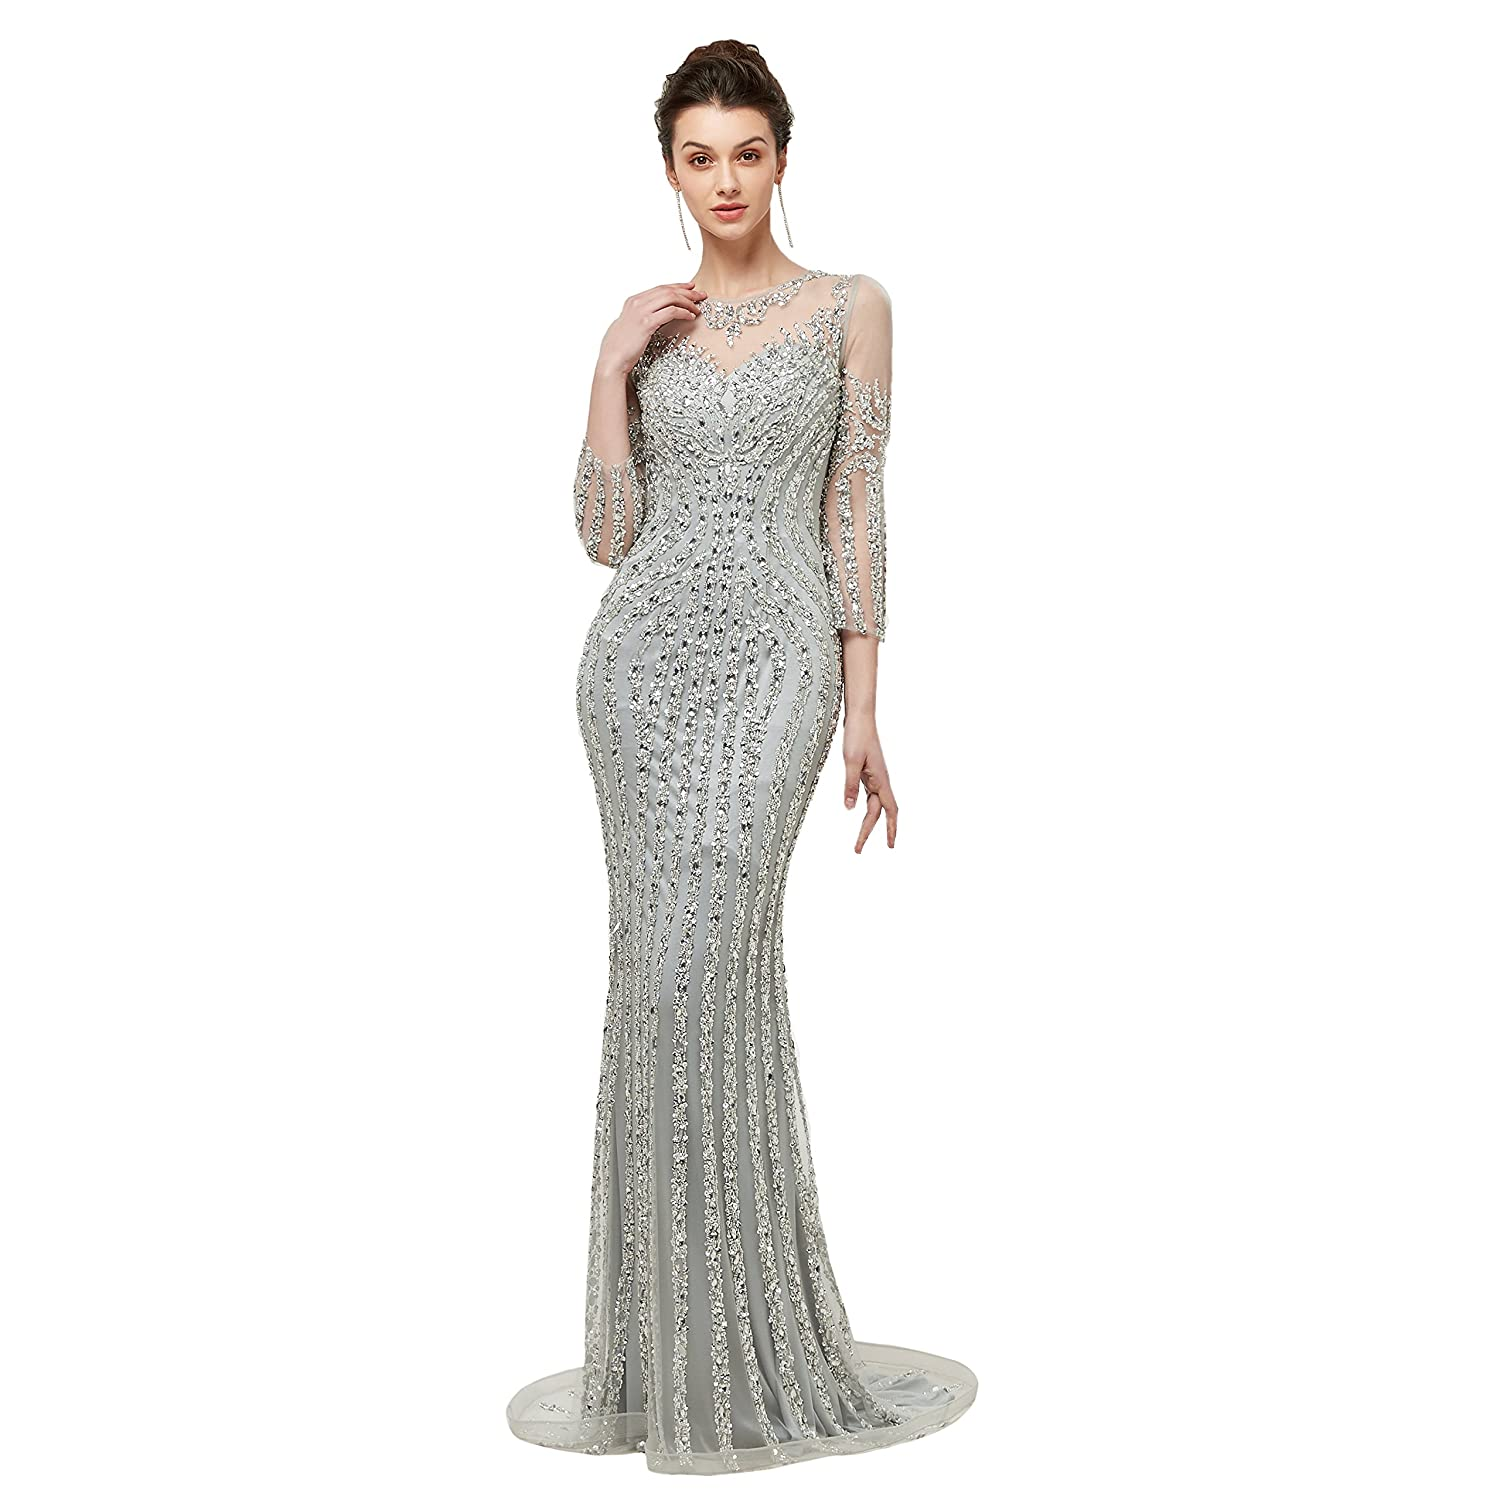 d20ca72e Lazacos Women's Luxury Beading Crystals Prom Dress Sexy Mermaid Evening  Party Formal Gown at Amazon Women's Clothing store: